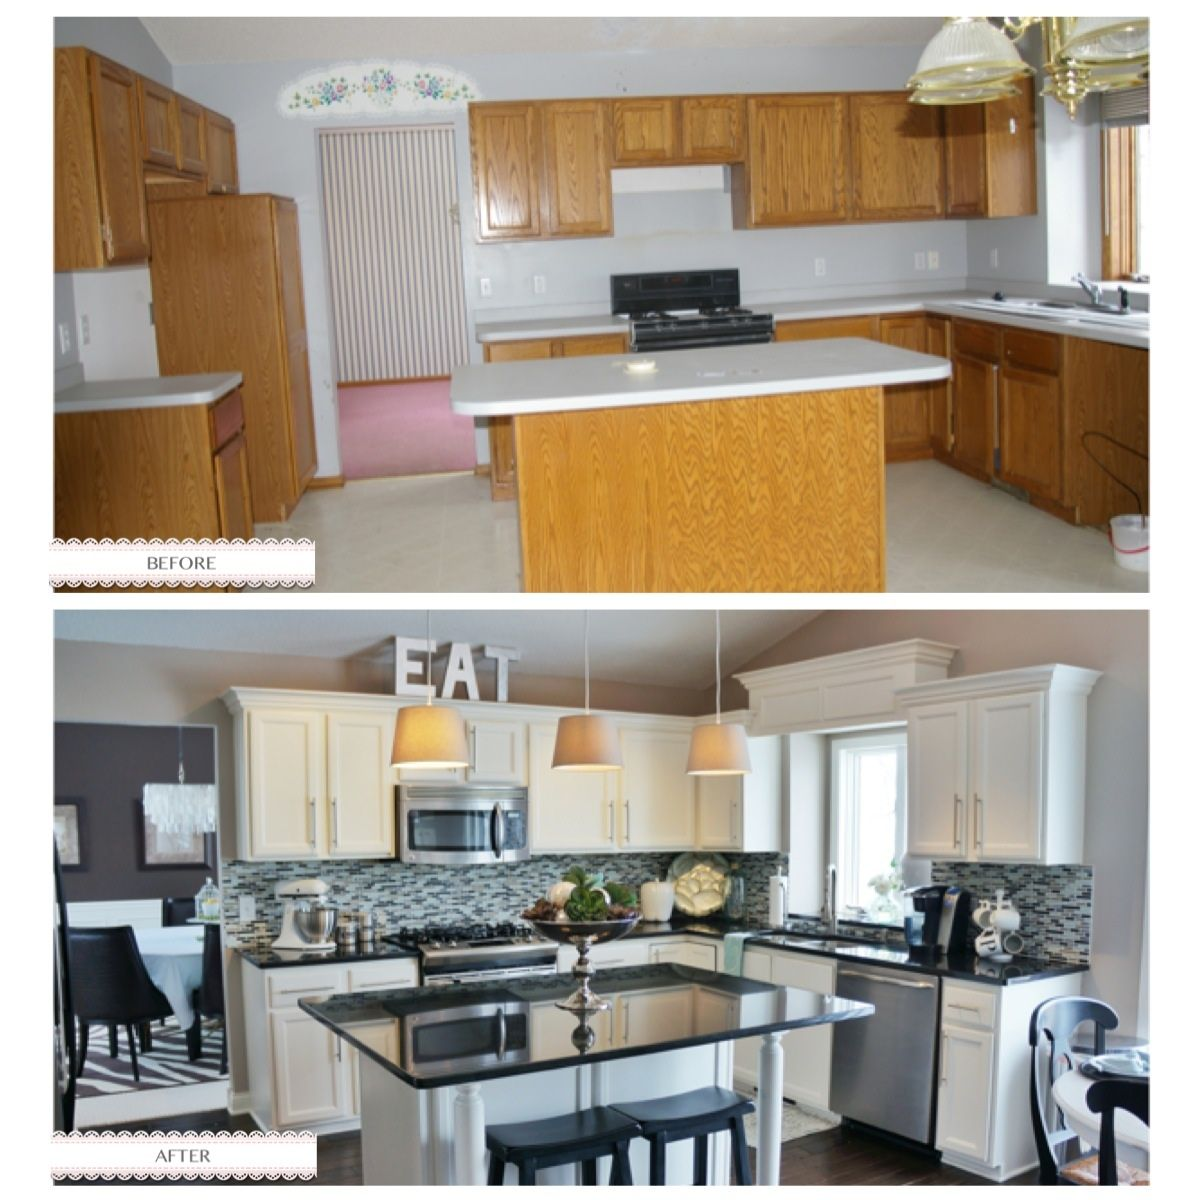 "Kitchen Updates Before And After: 90's Kitchen Makeover Not A Huge Fan Of The ""eat"" Sign Of"